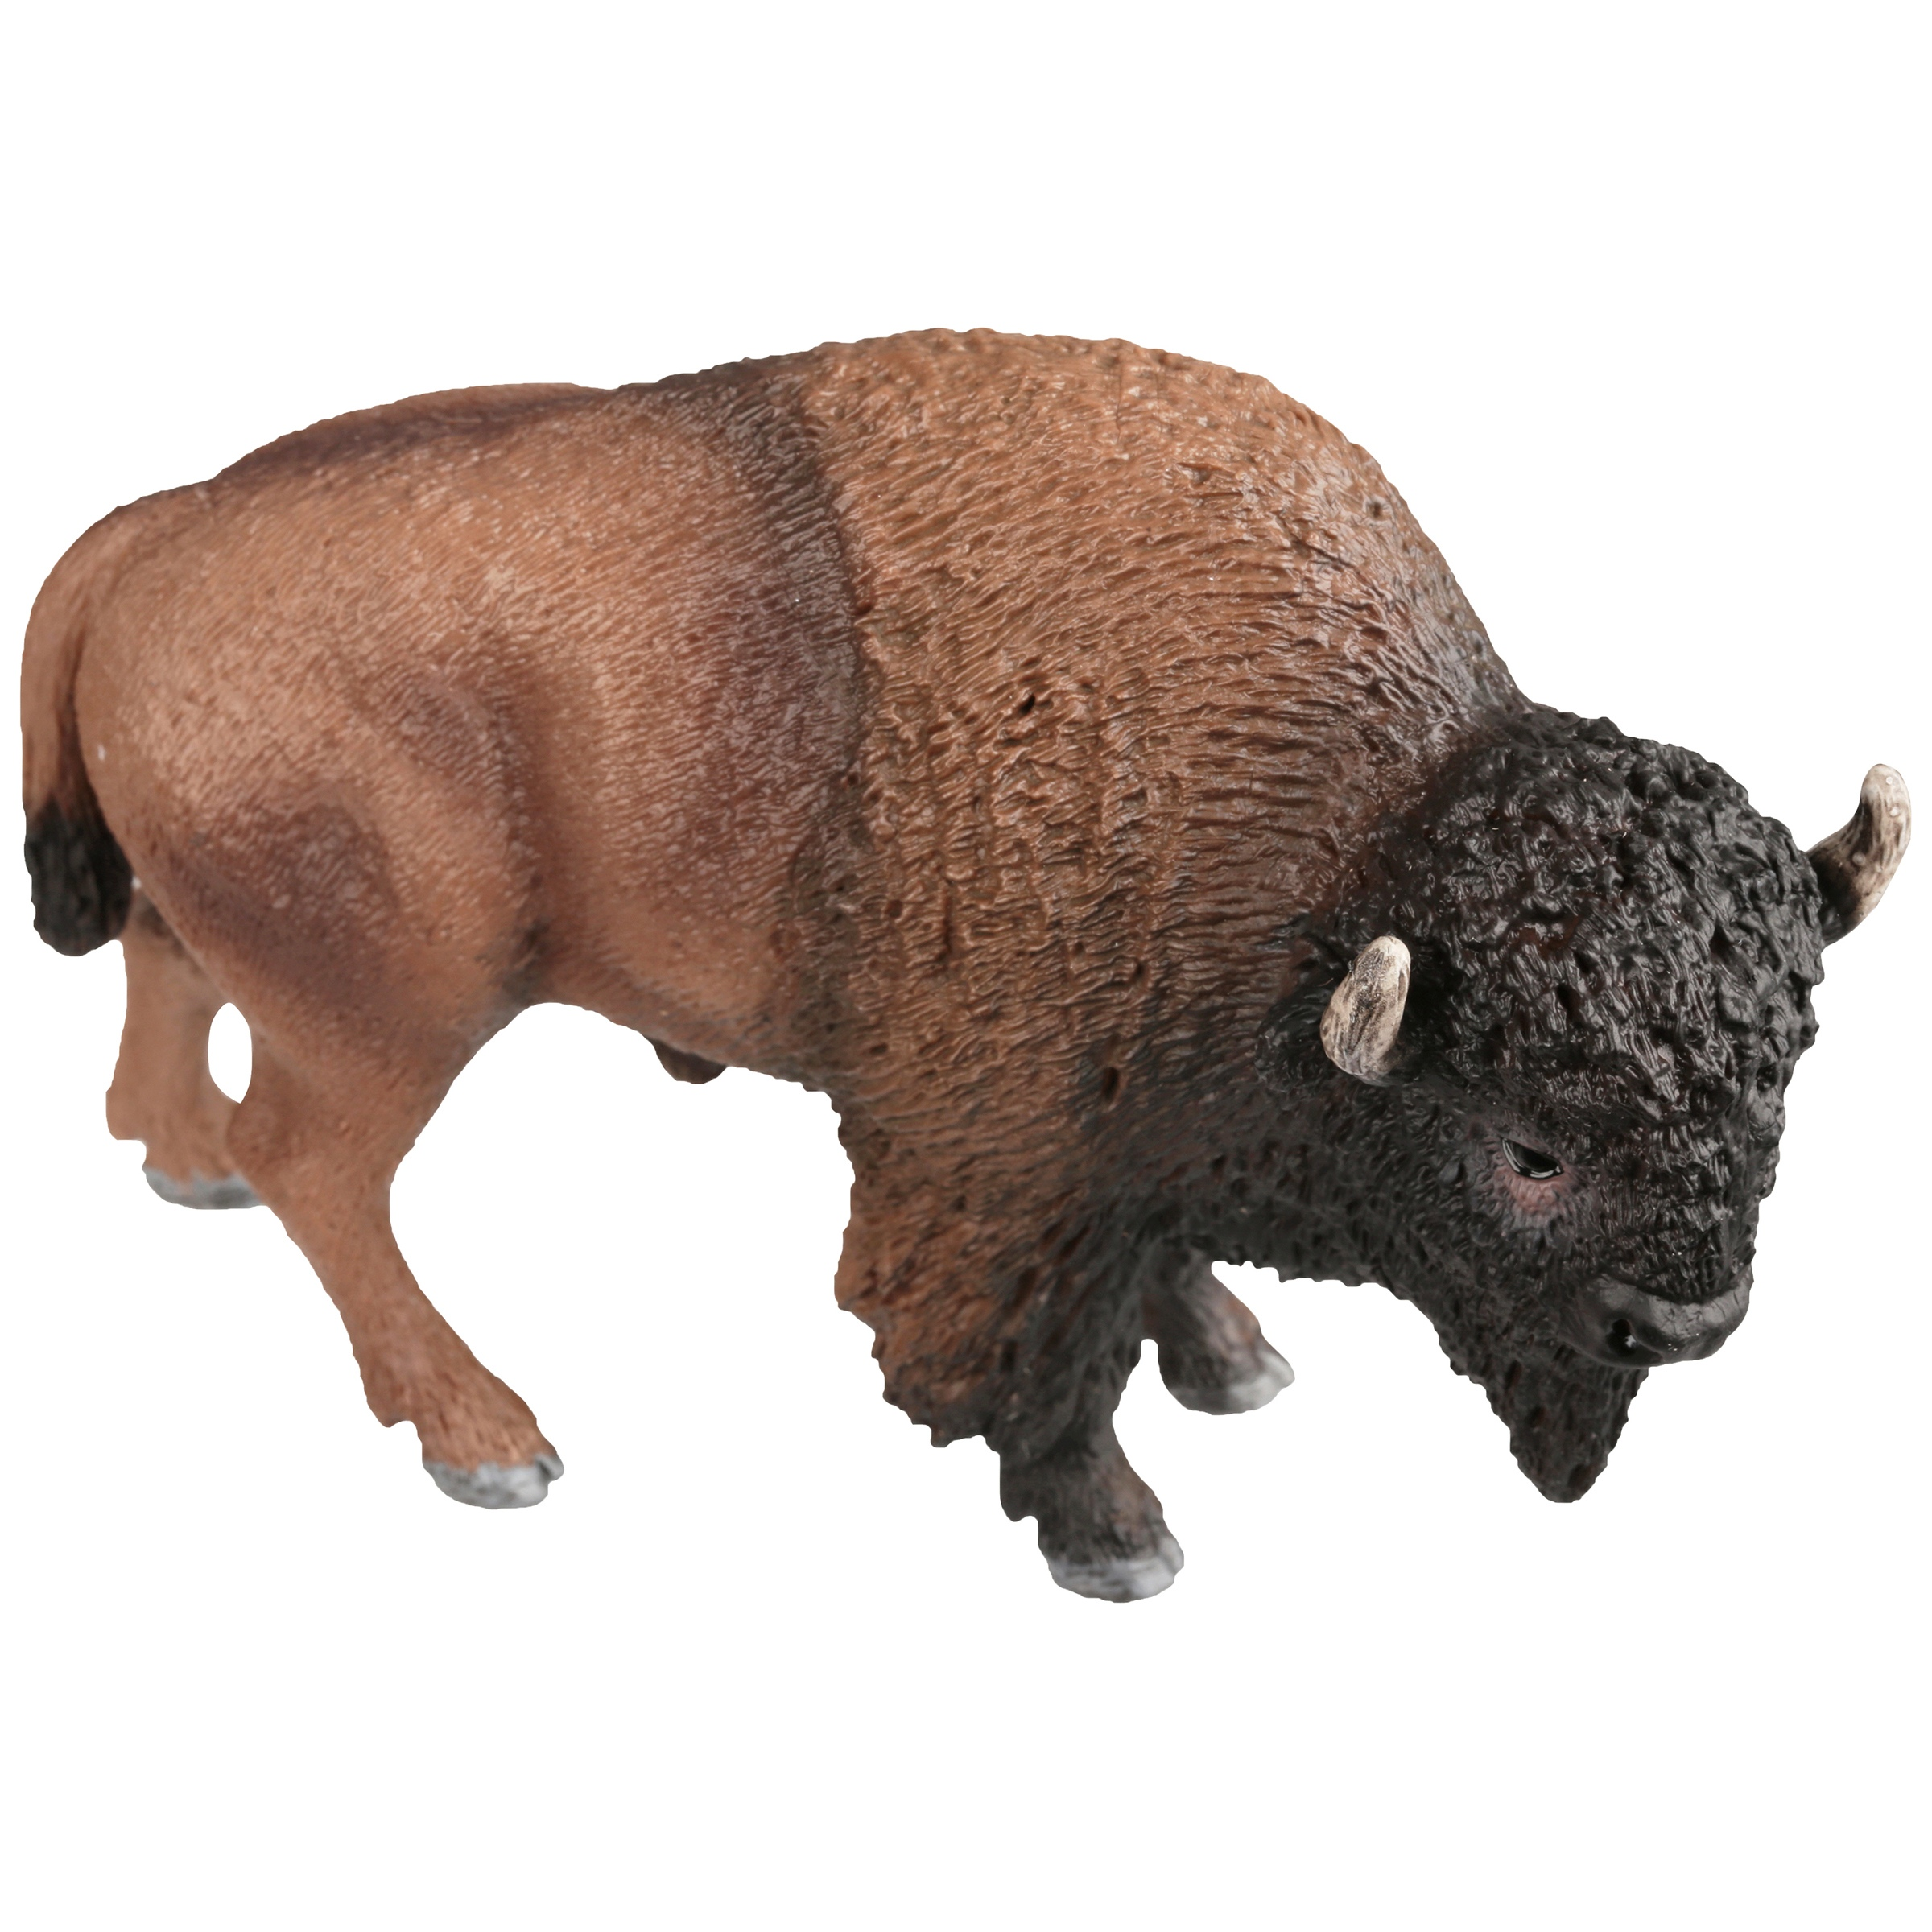 Schleich American Bison Toy Animal